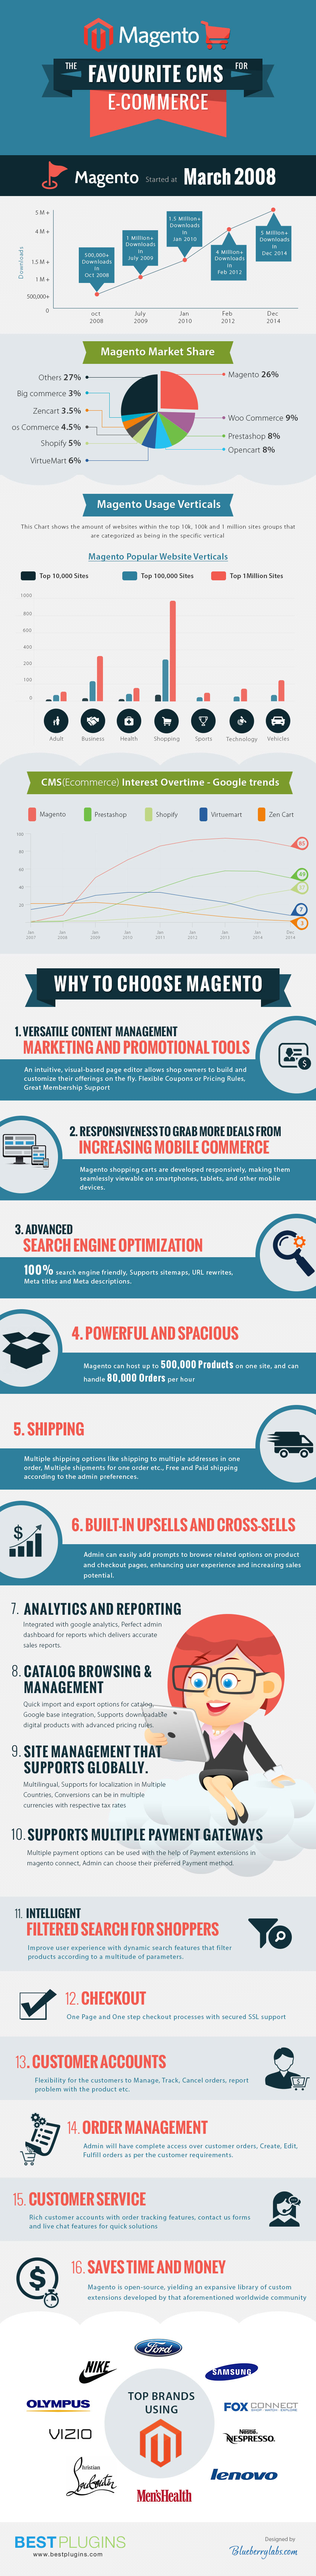 Magento Favourite CMS for Ecommerce